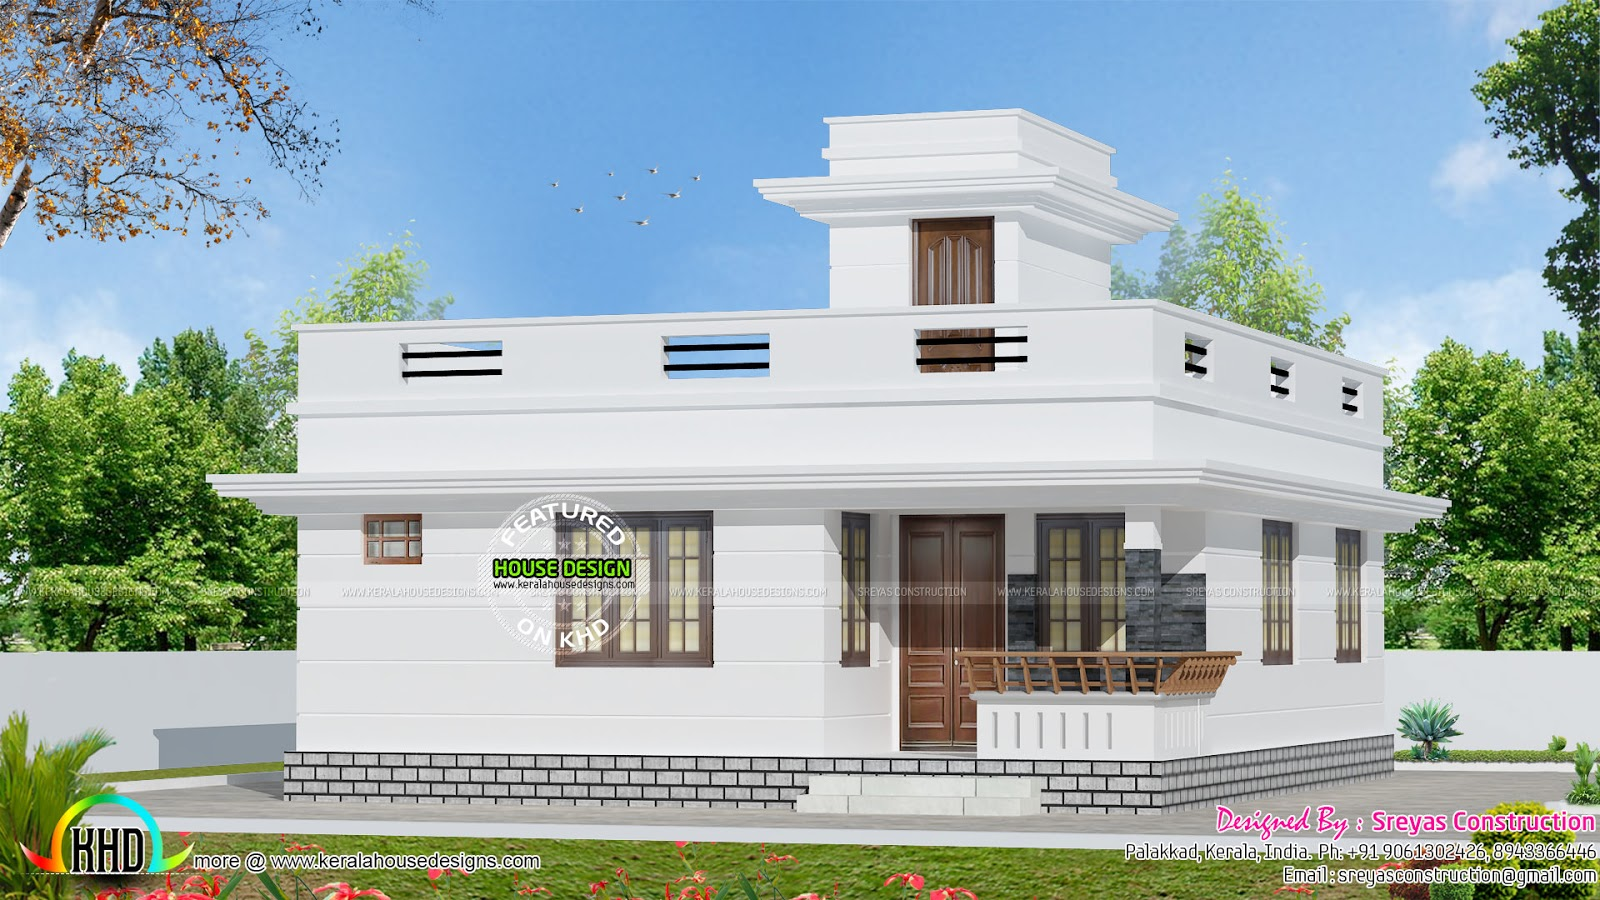 882 sq ft small house architecture kerala home design for Architectural plans for houses in india